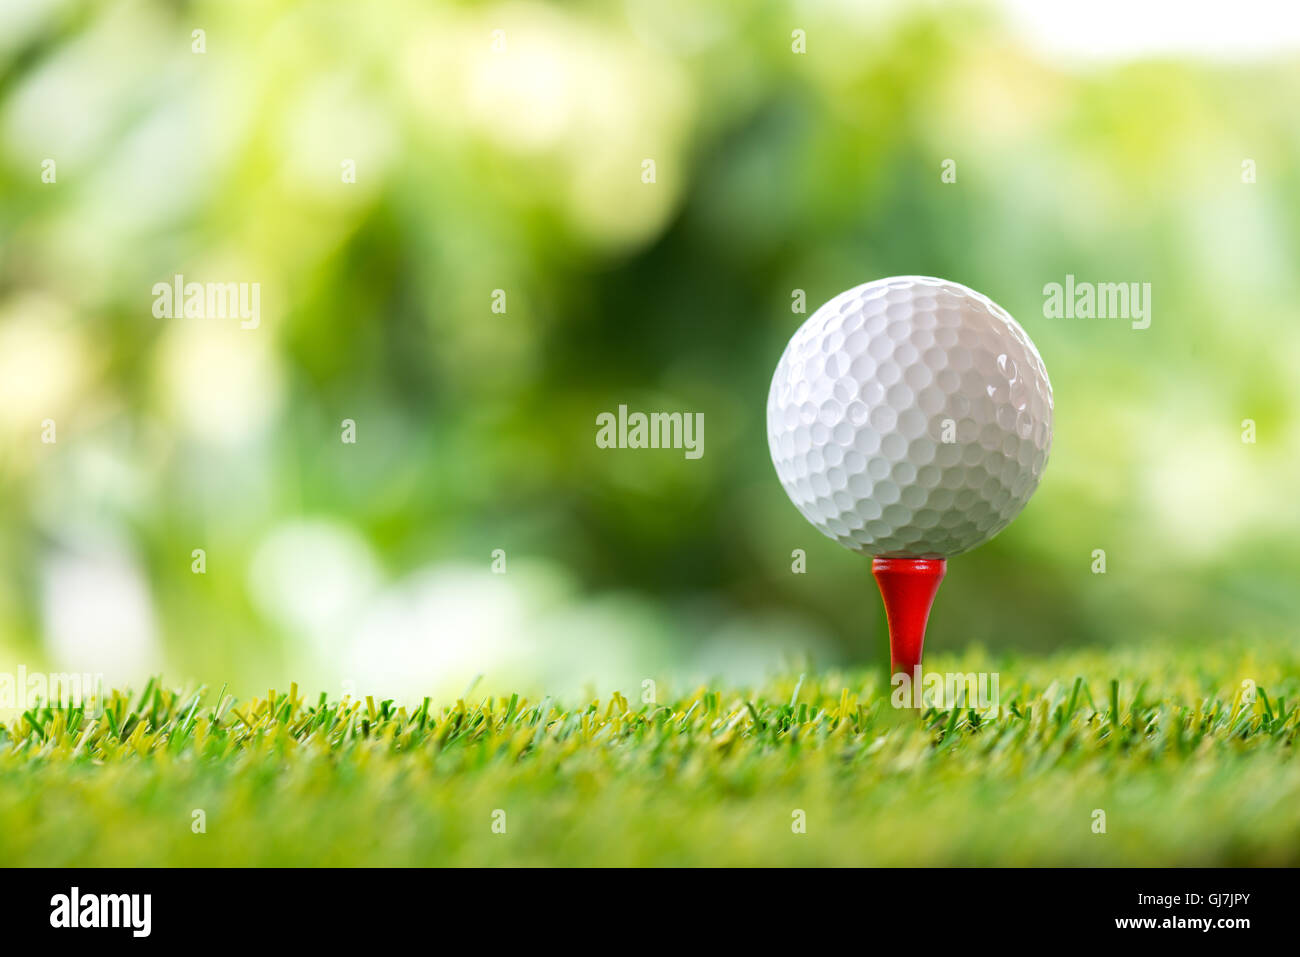 Balle de golf sur tee de golf en Photo Stock